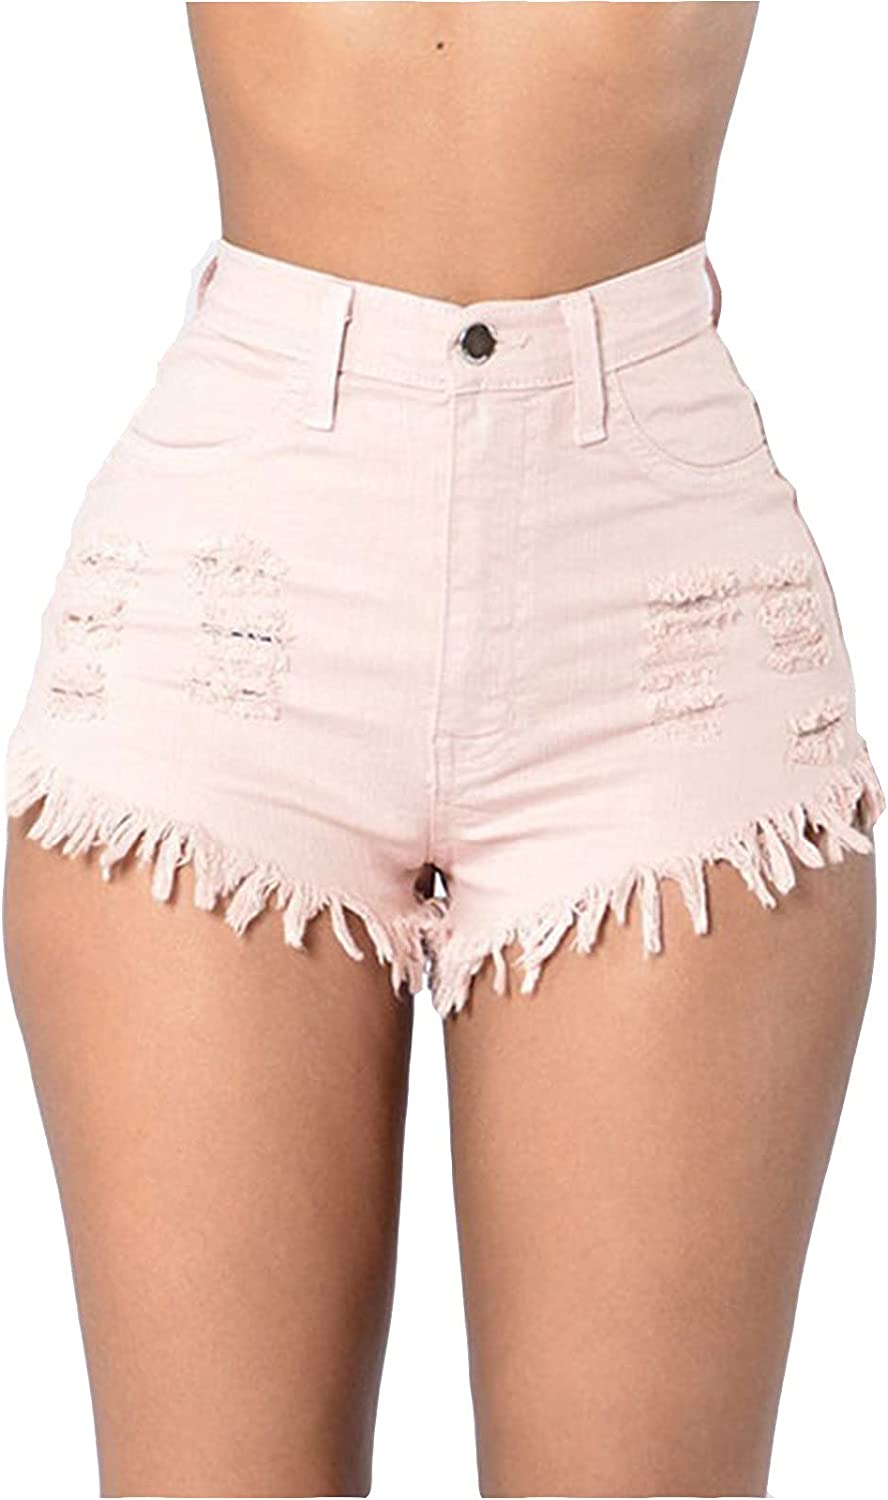 Women Casual Summer Low Waist Hole Stretchy Denim Jean Shorts Junior Hot Short Pants with Pockets